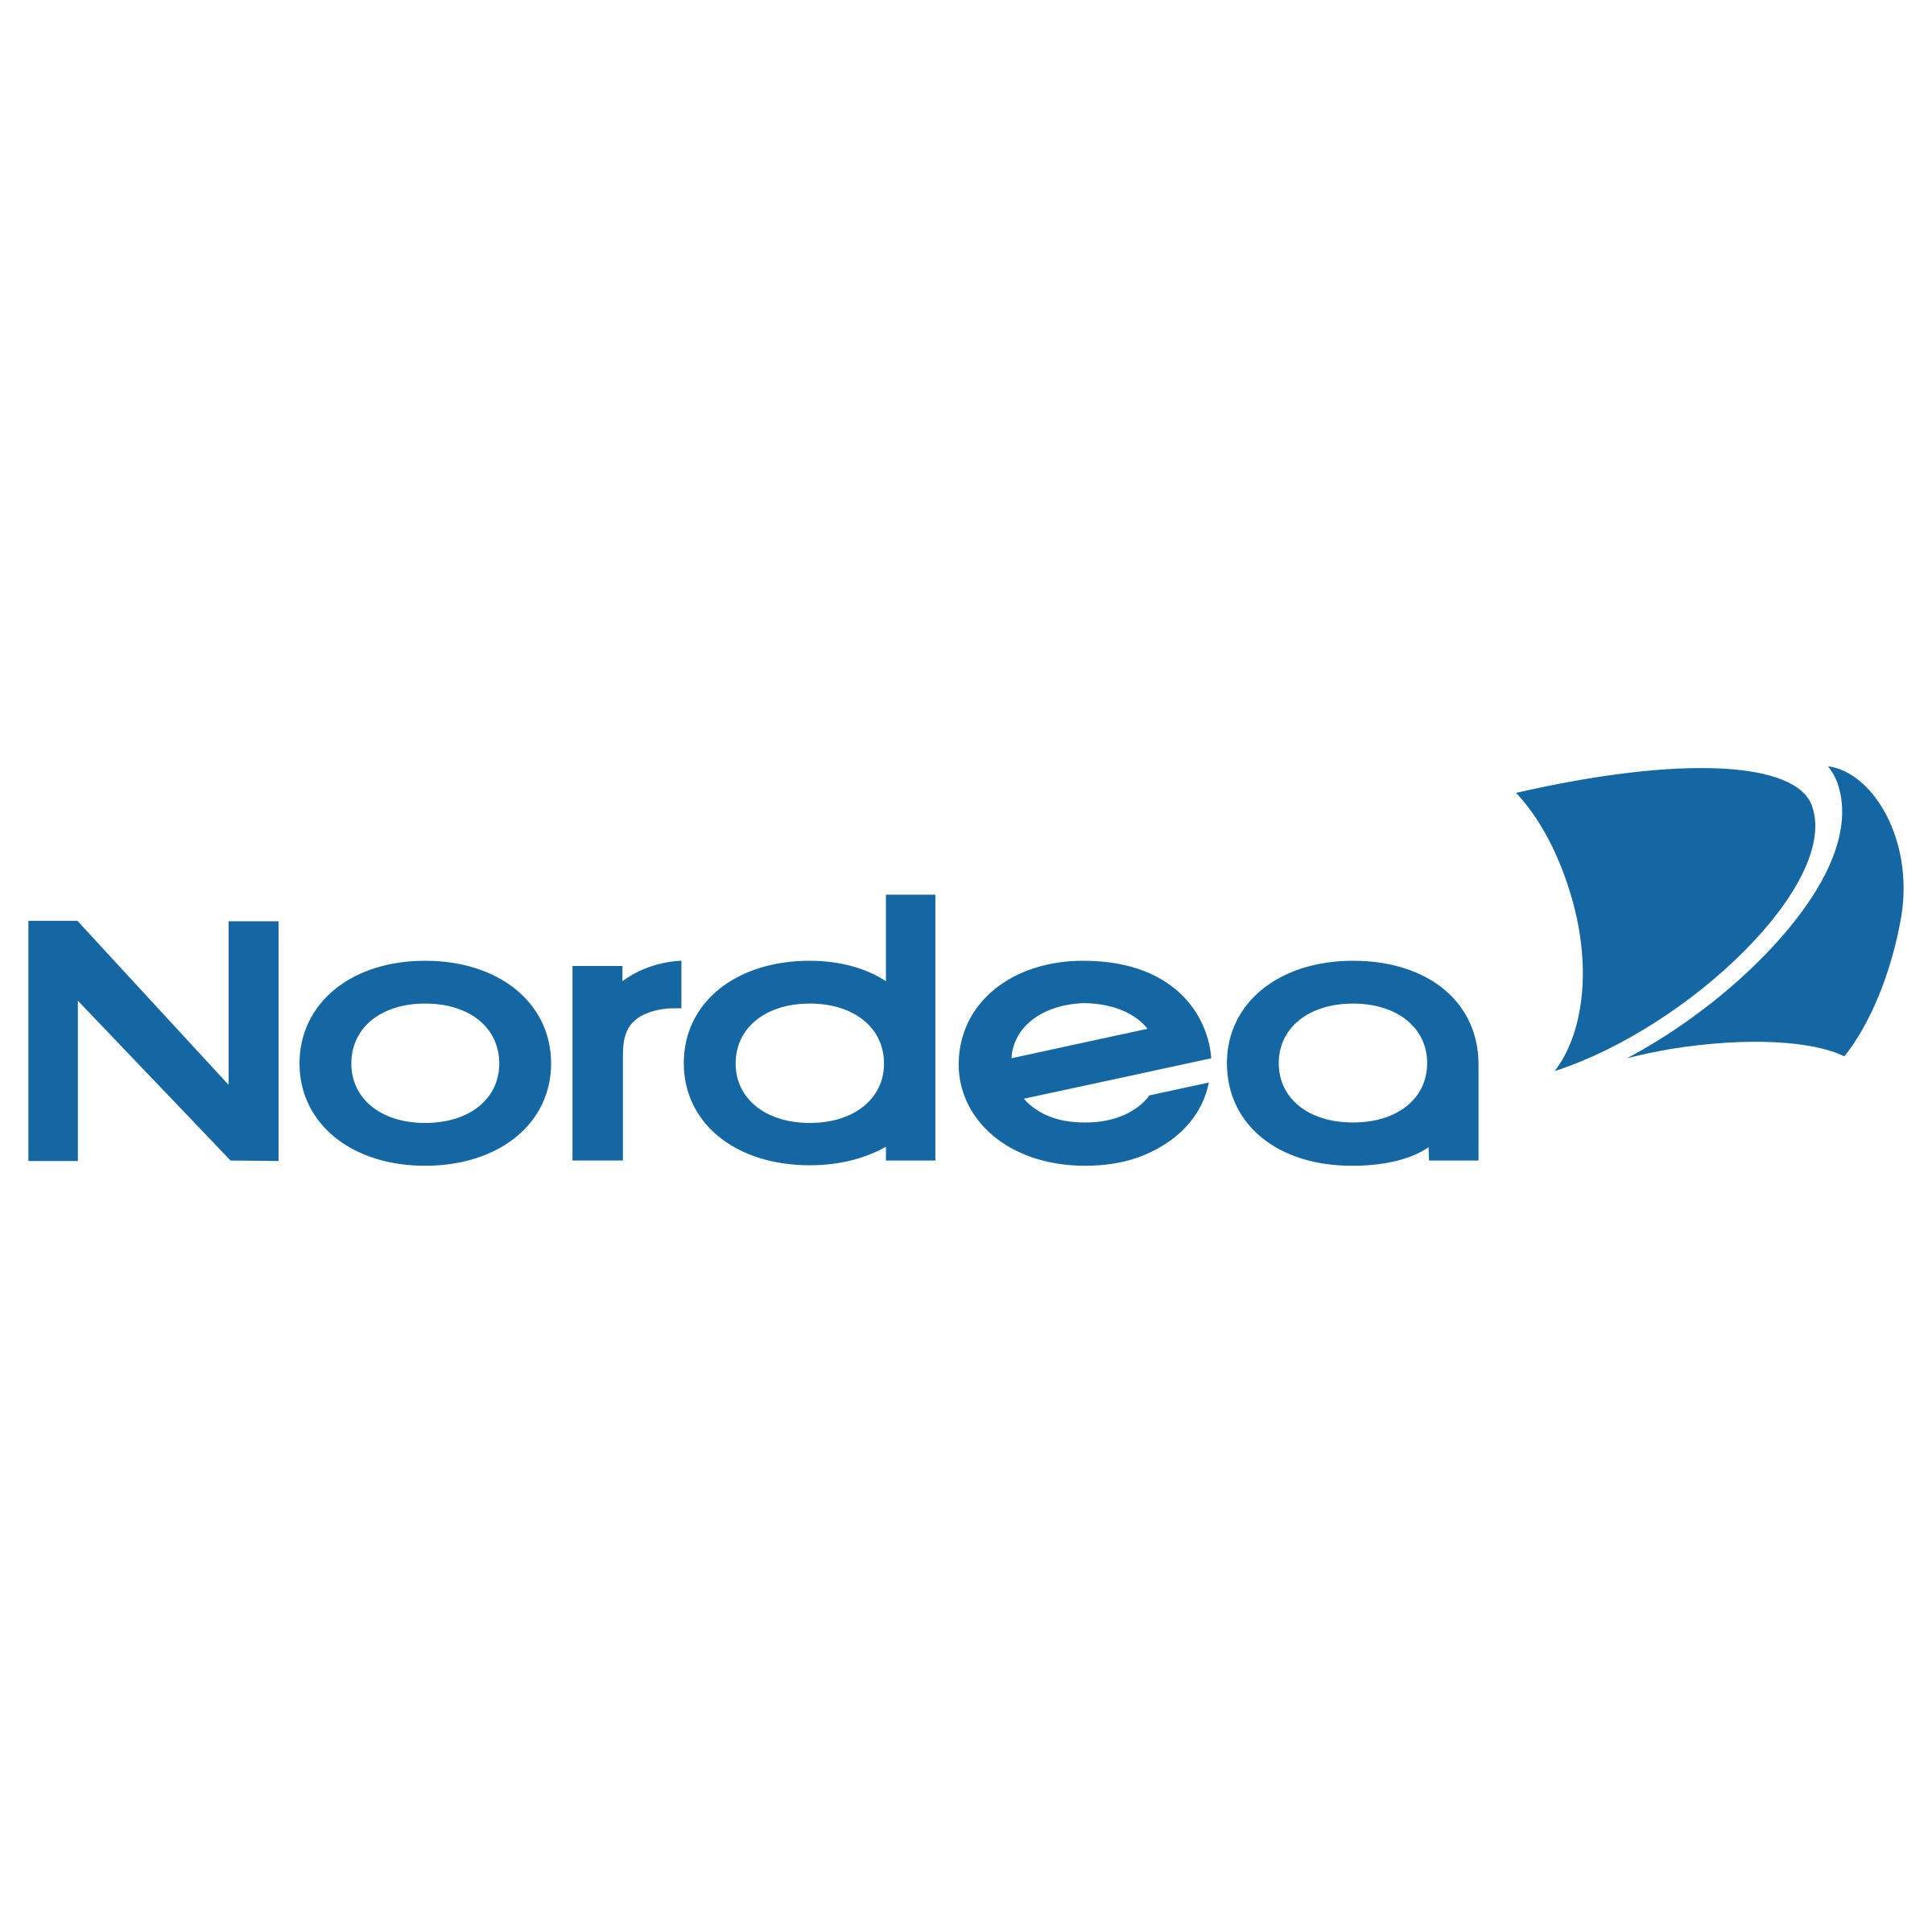 nordea-logo-transparent